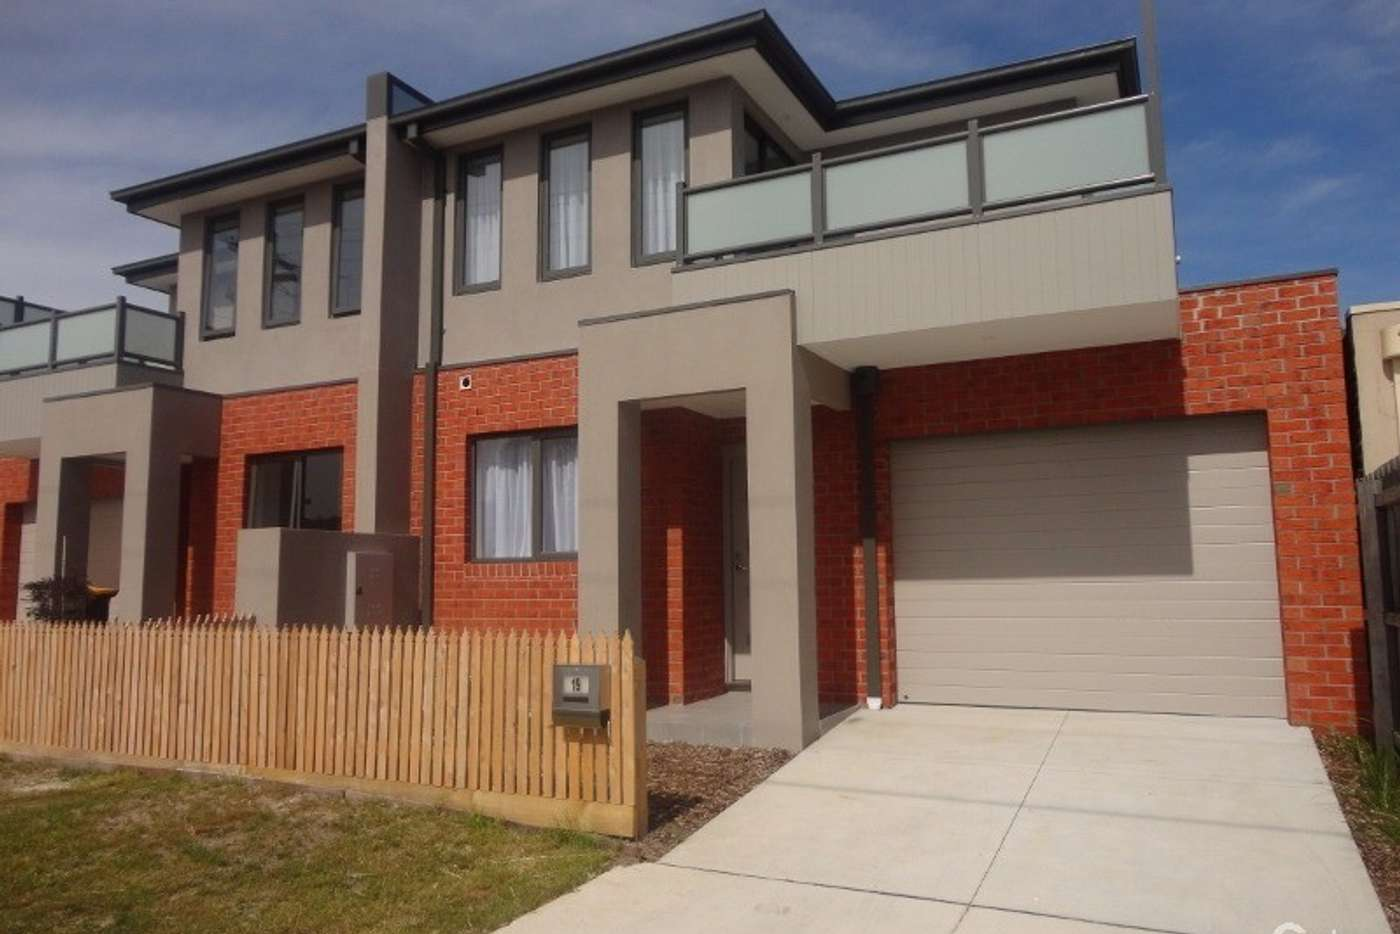 Main view of Homely townhouse listing, 19 Stanley Street, Dandenong VIC 3175